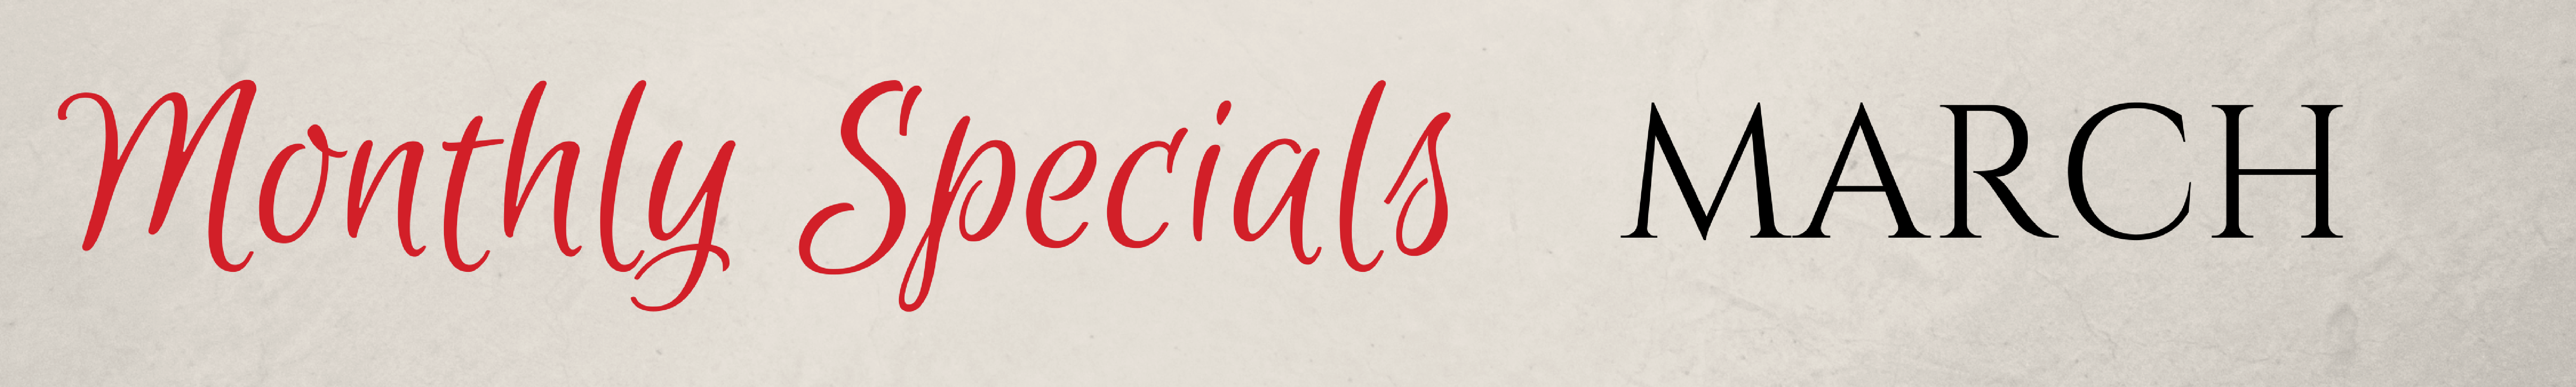 Monthly Specials for March